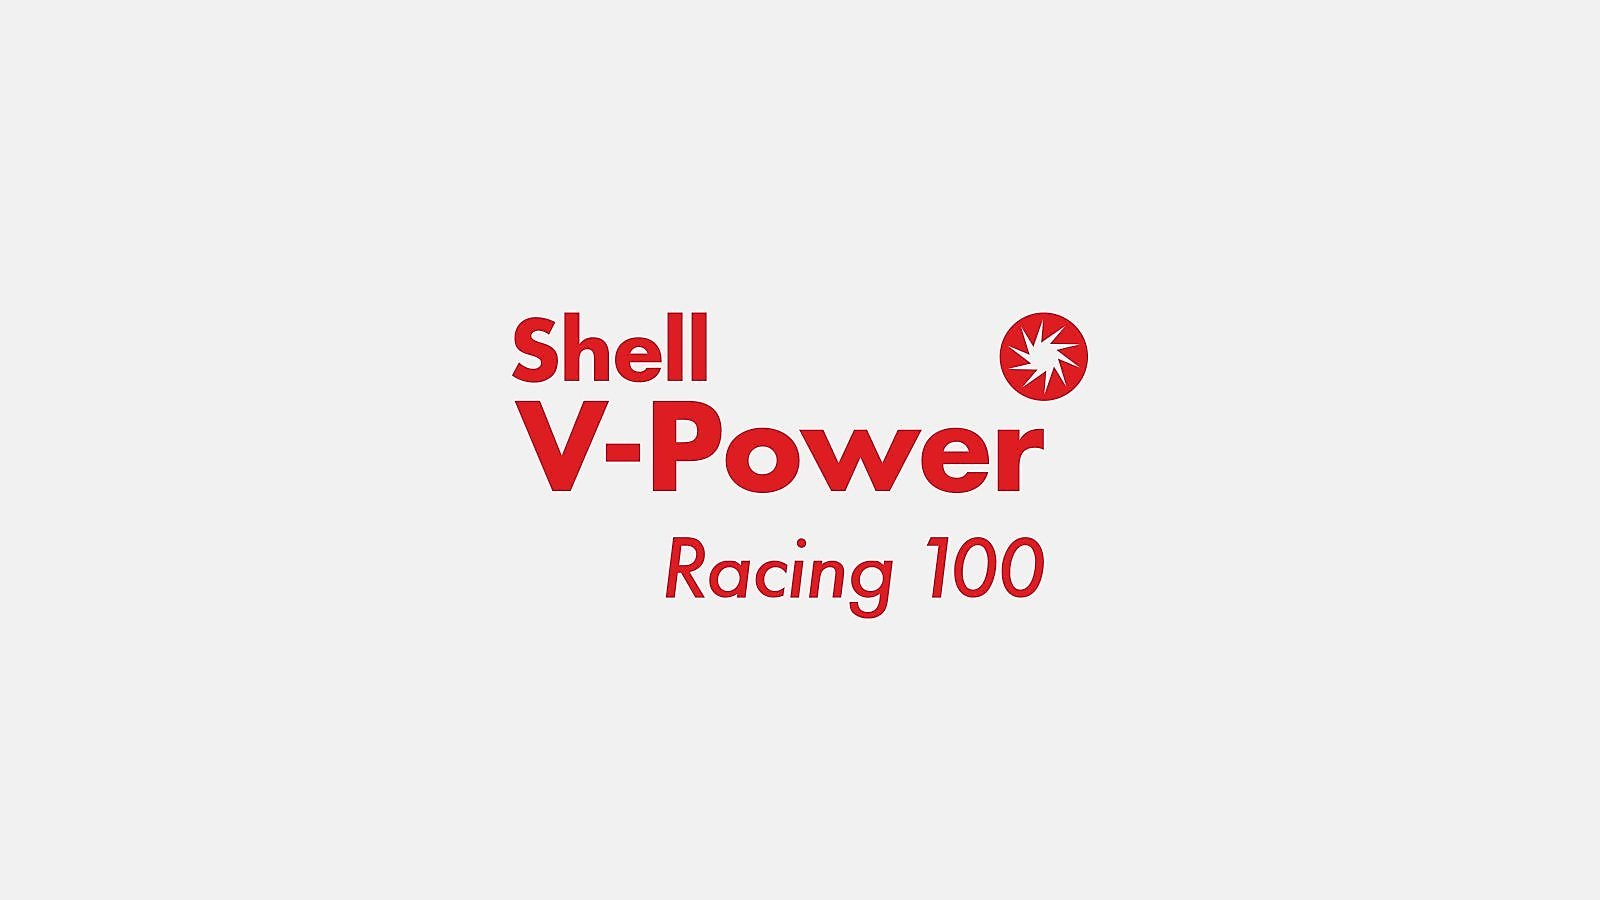 Shell V-Power Racing